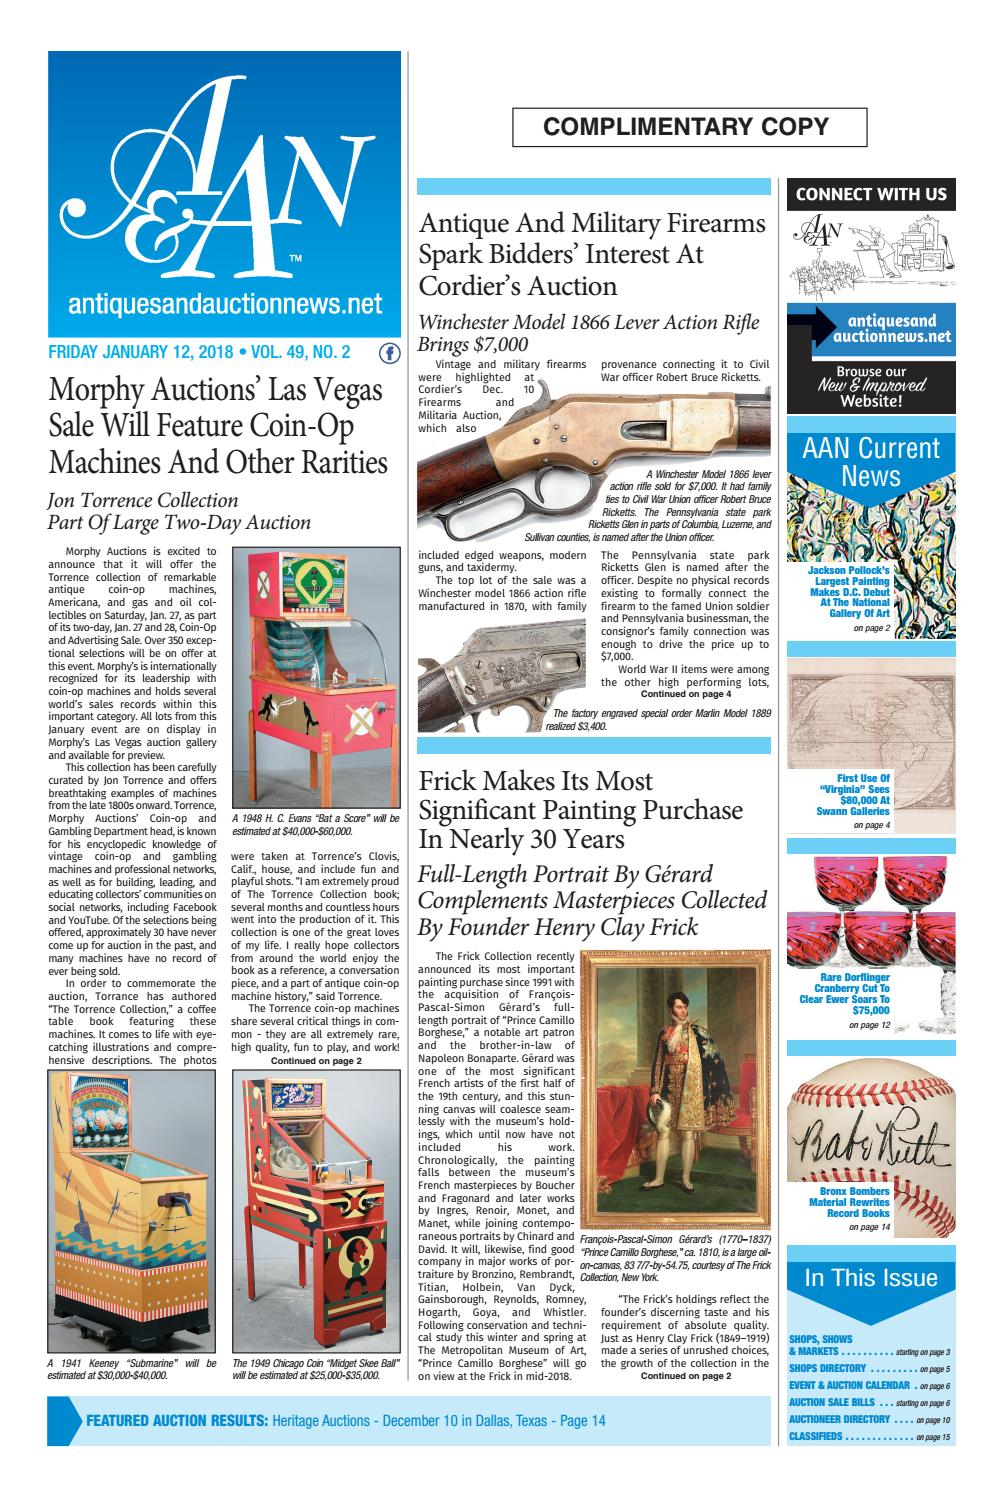 1059b3699e23 Antiques & Auction News 011218 by Antiques & Auction News - issuu